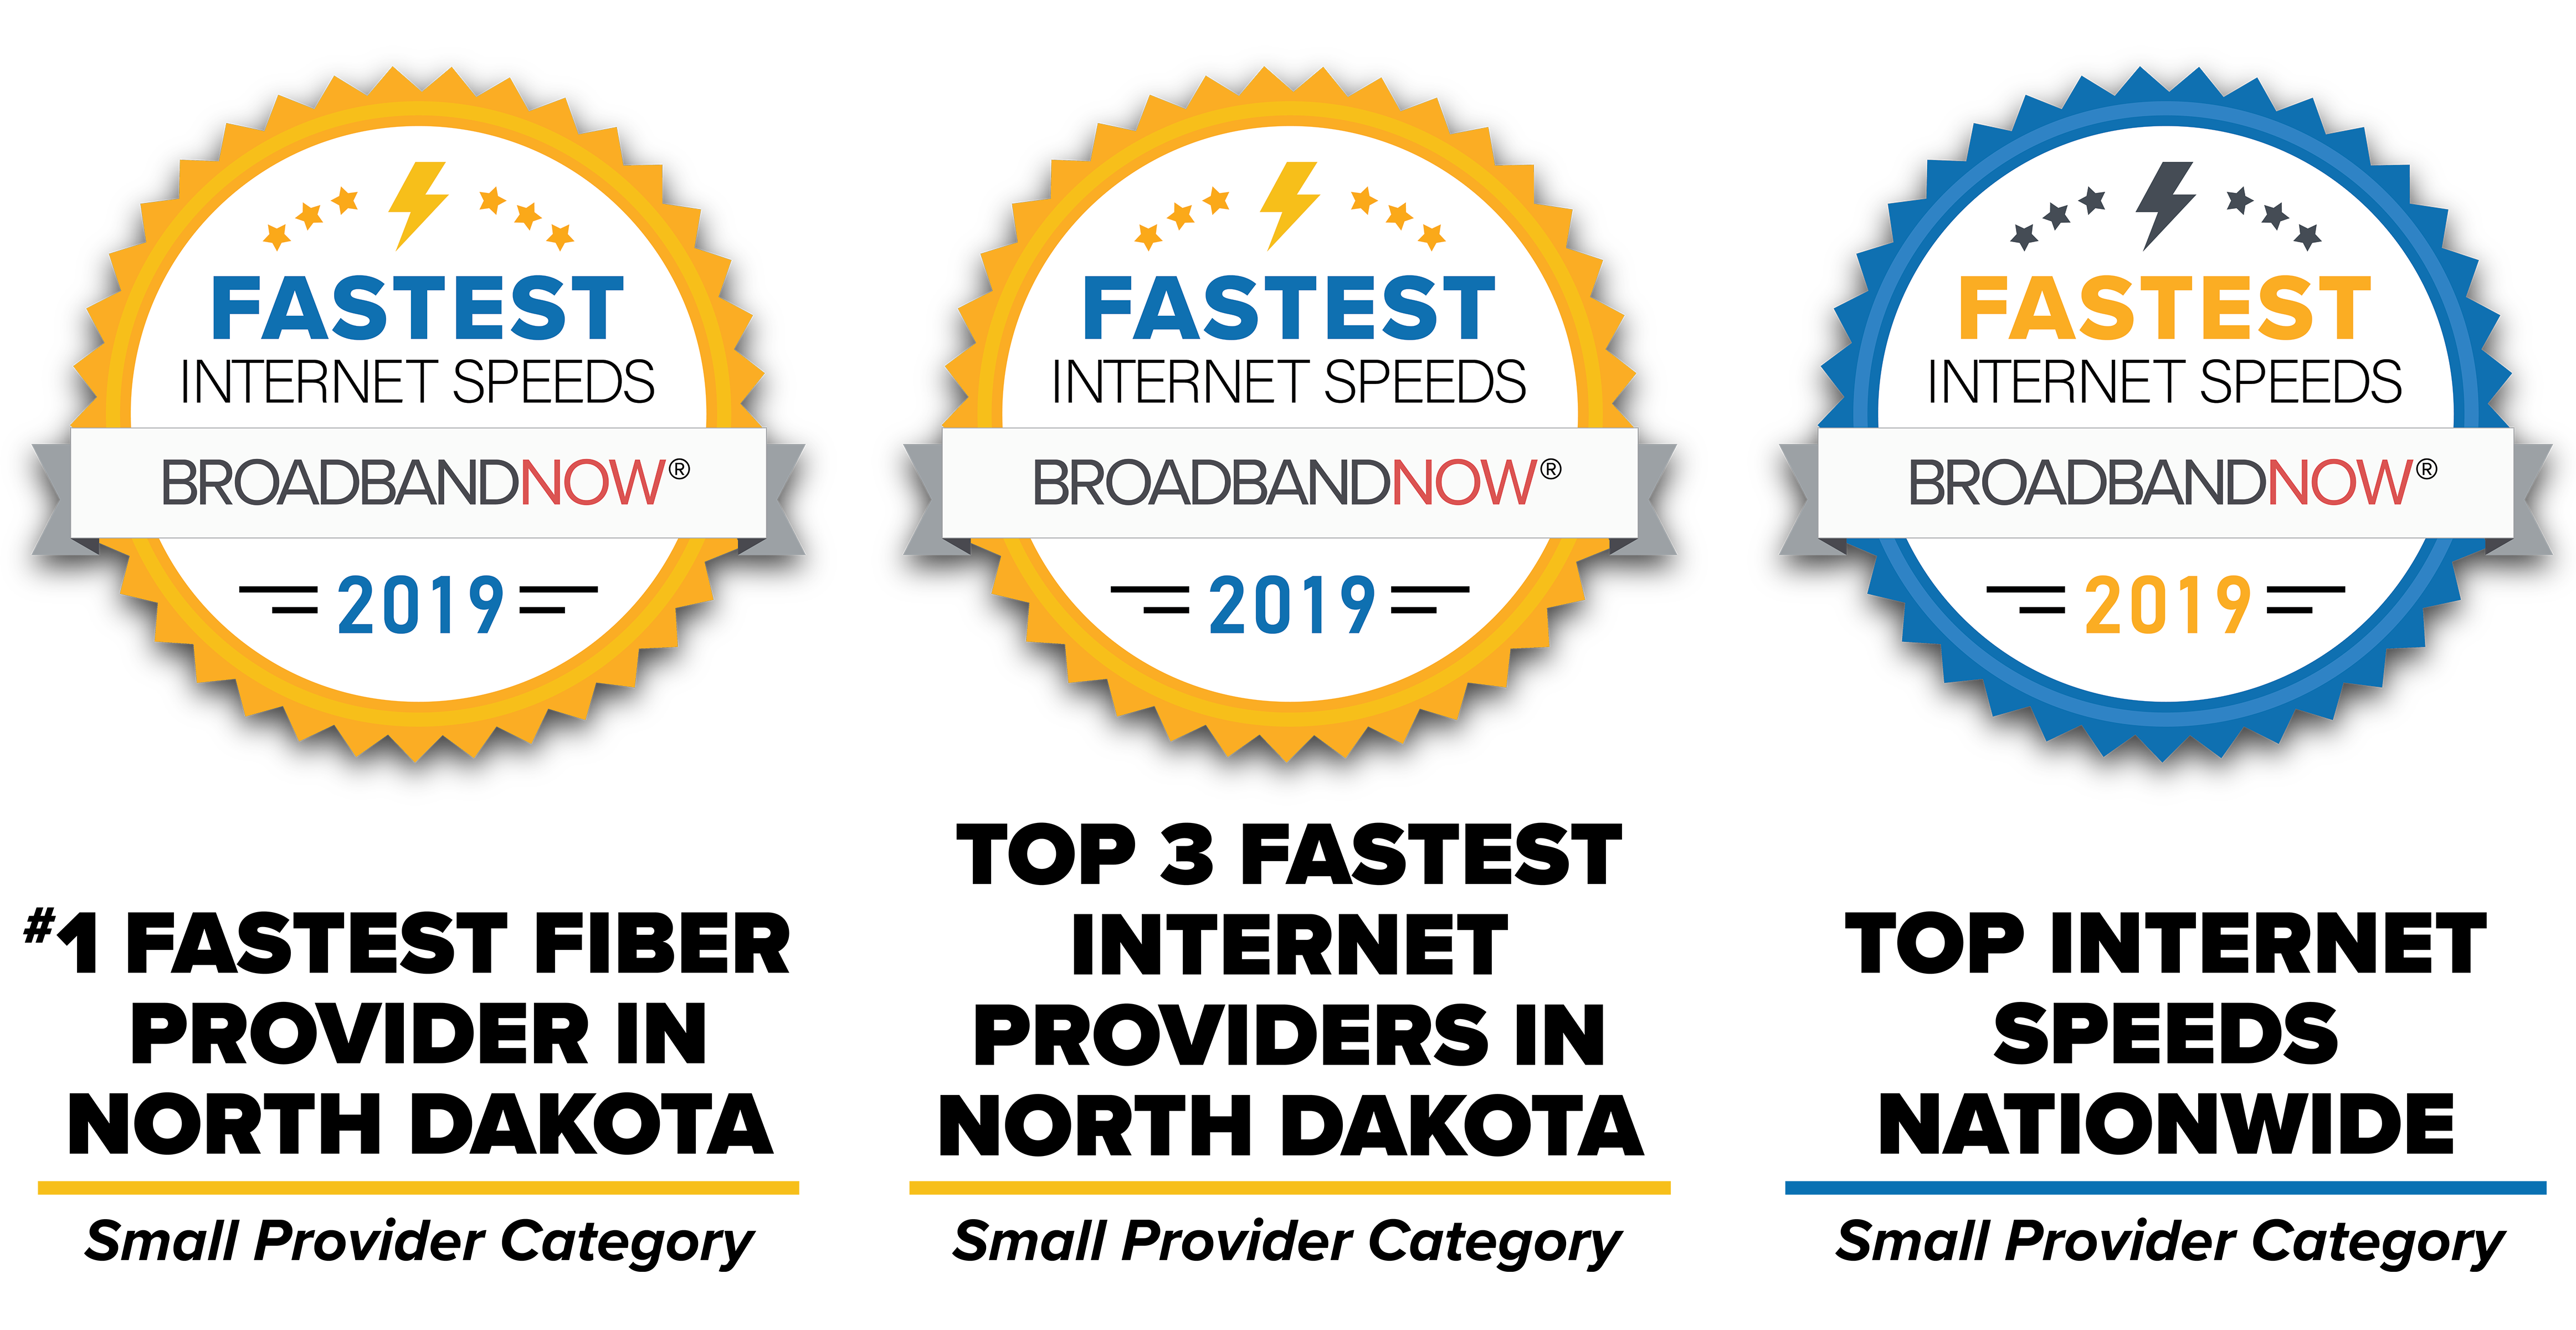 #1 fastest fiber provider in North Dakota. Top 3 fastest internet providers in North Dakota. Top internet speeds nationwide.